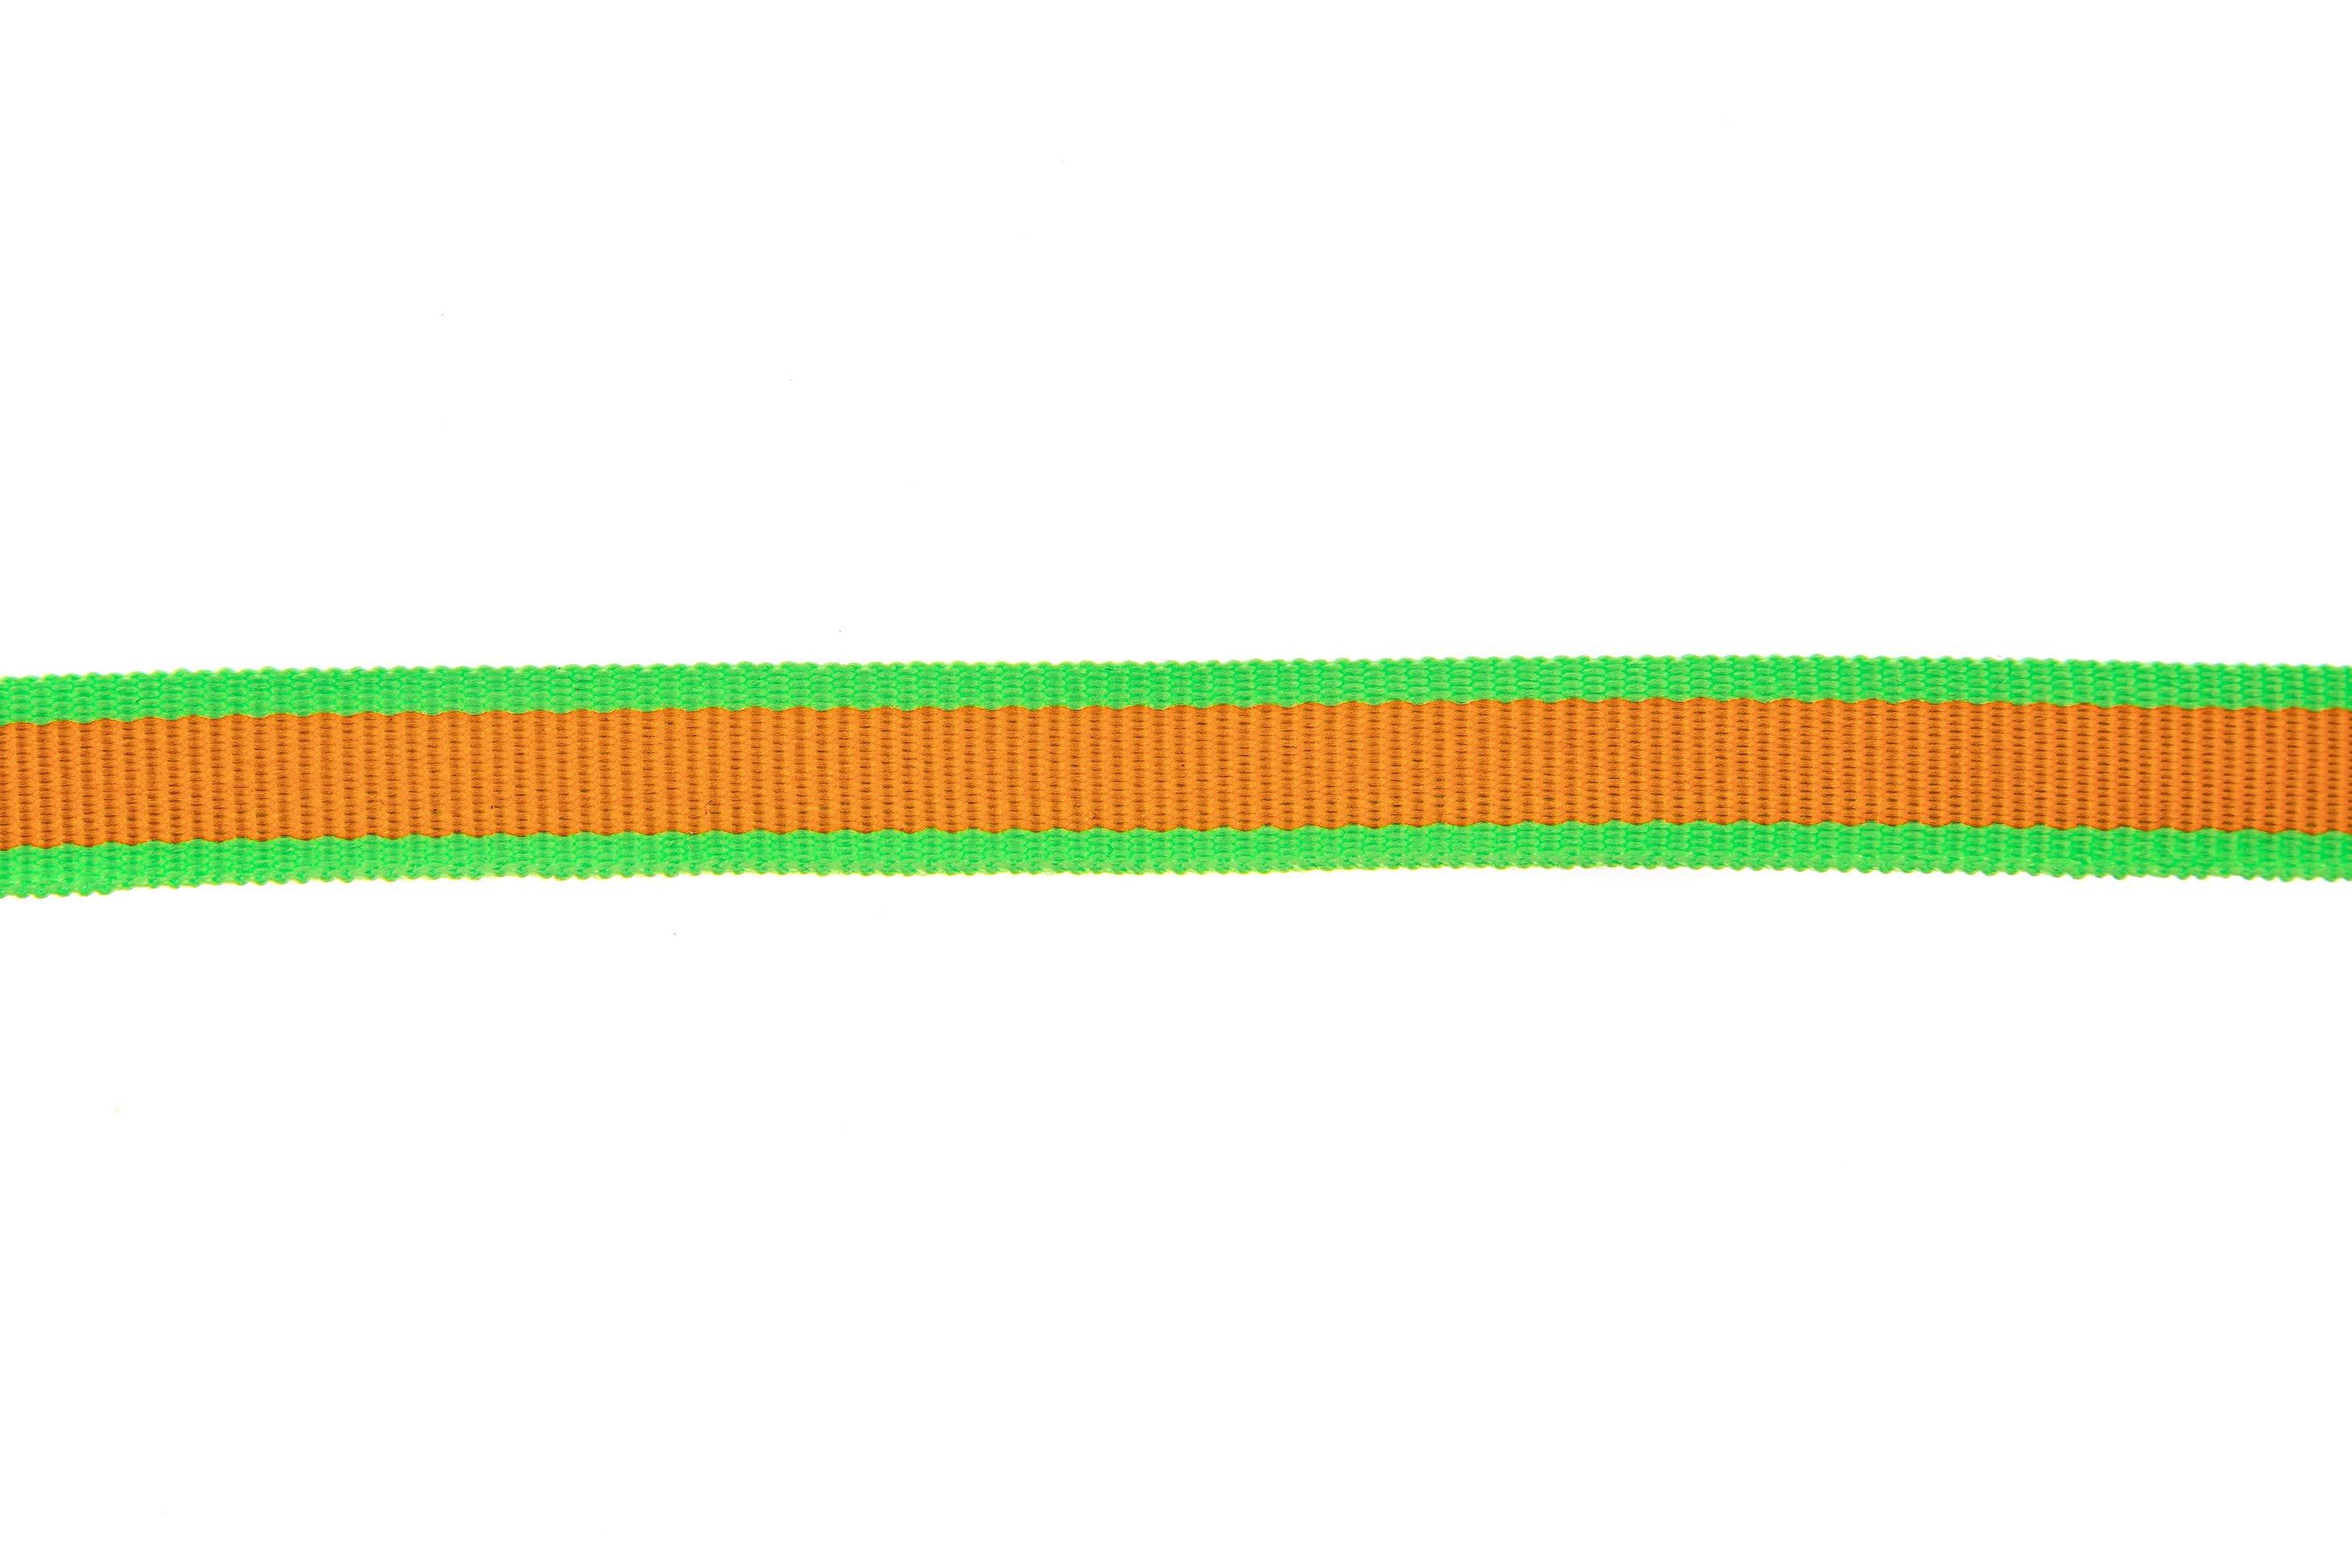 10m roll Bright Orange Grosgrain Ribbon with Bright Lime Green Edging